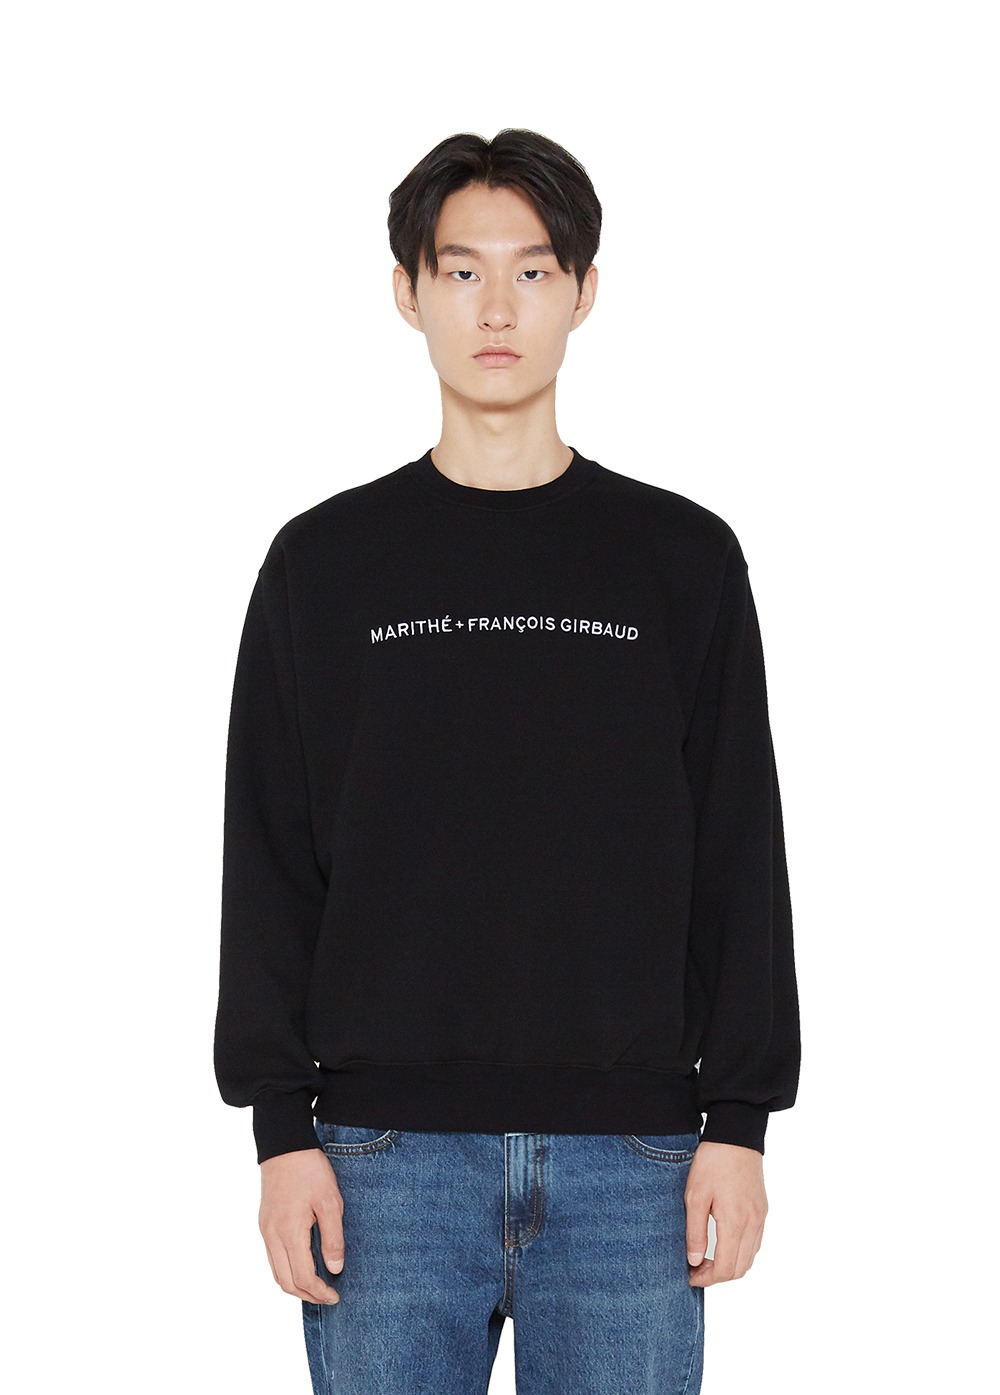 MFG FULL SIZE NAME LOGO SWEATSHIRT black